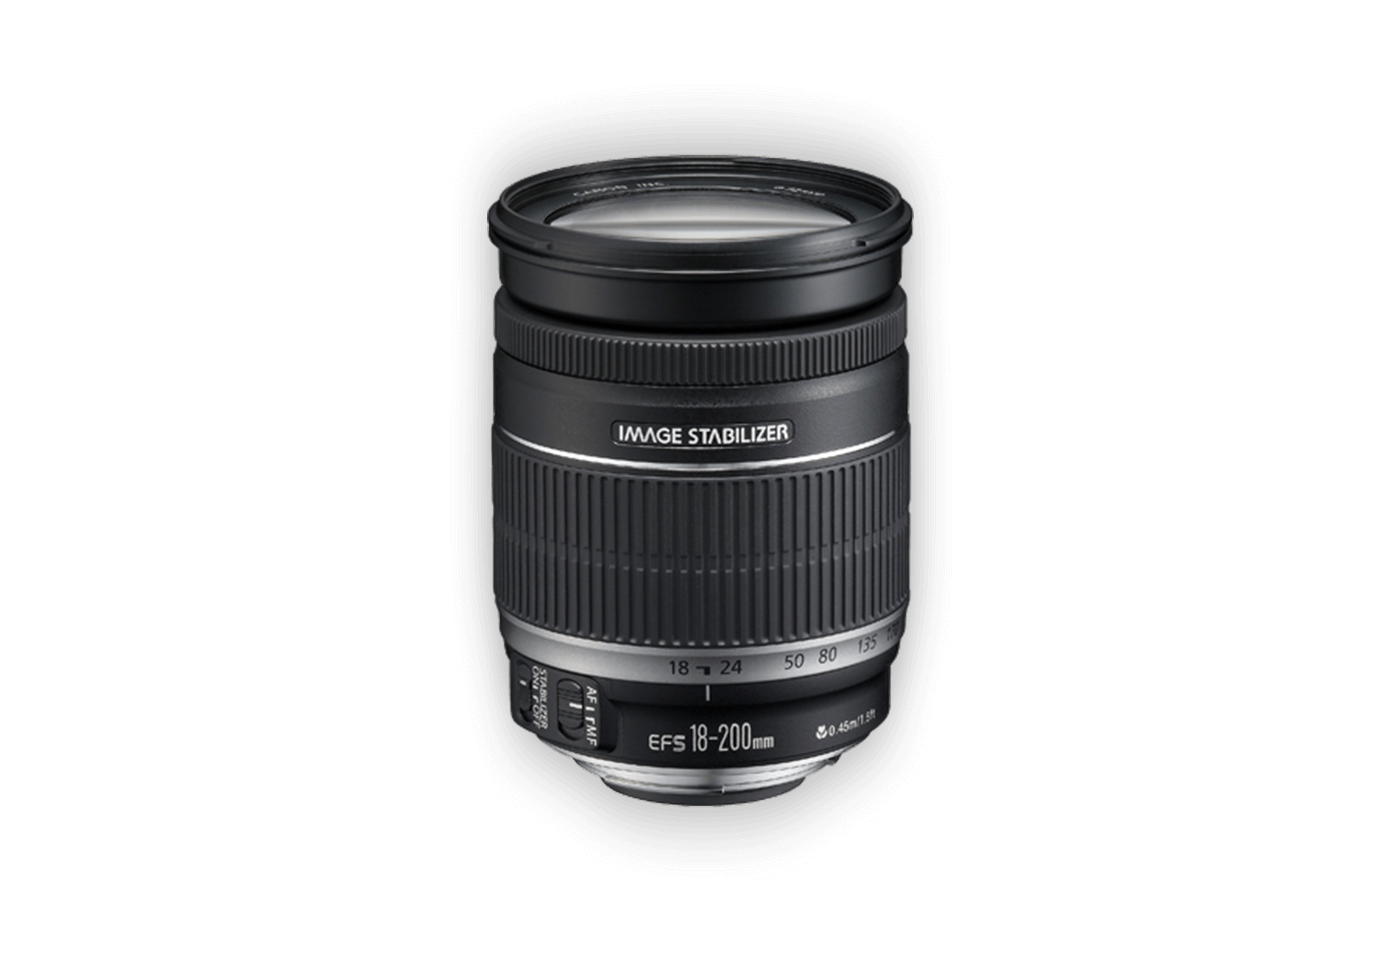 Side view of Canon EF-S 18-200mm f/3.5-5.6 IS lens